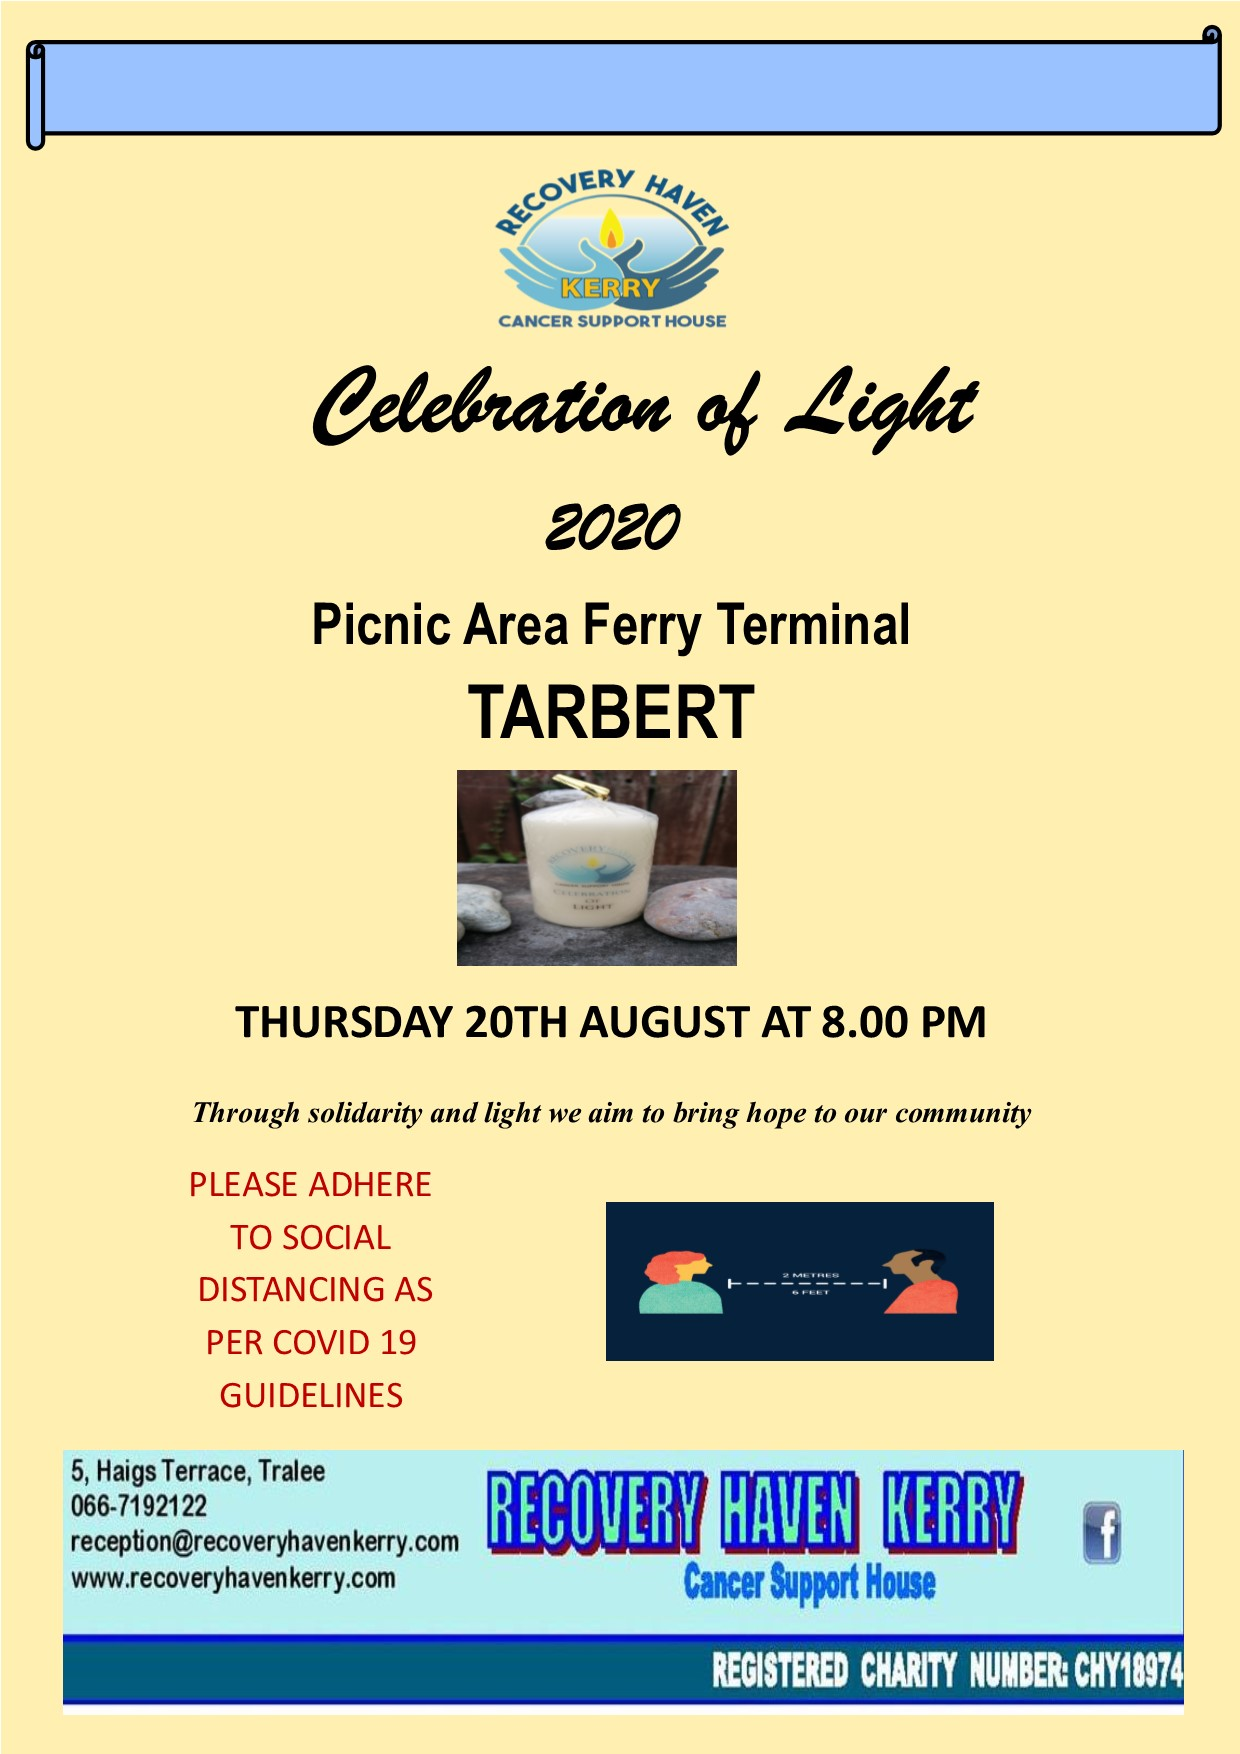 Celebration of Light Tarbert 2020